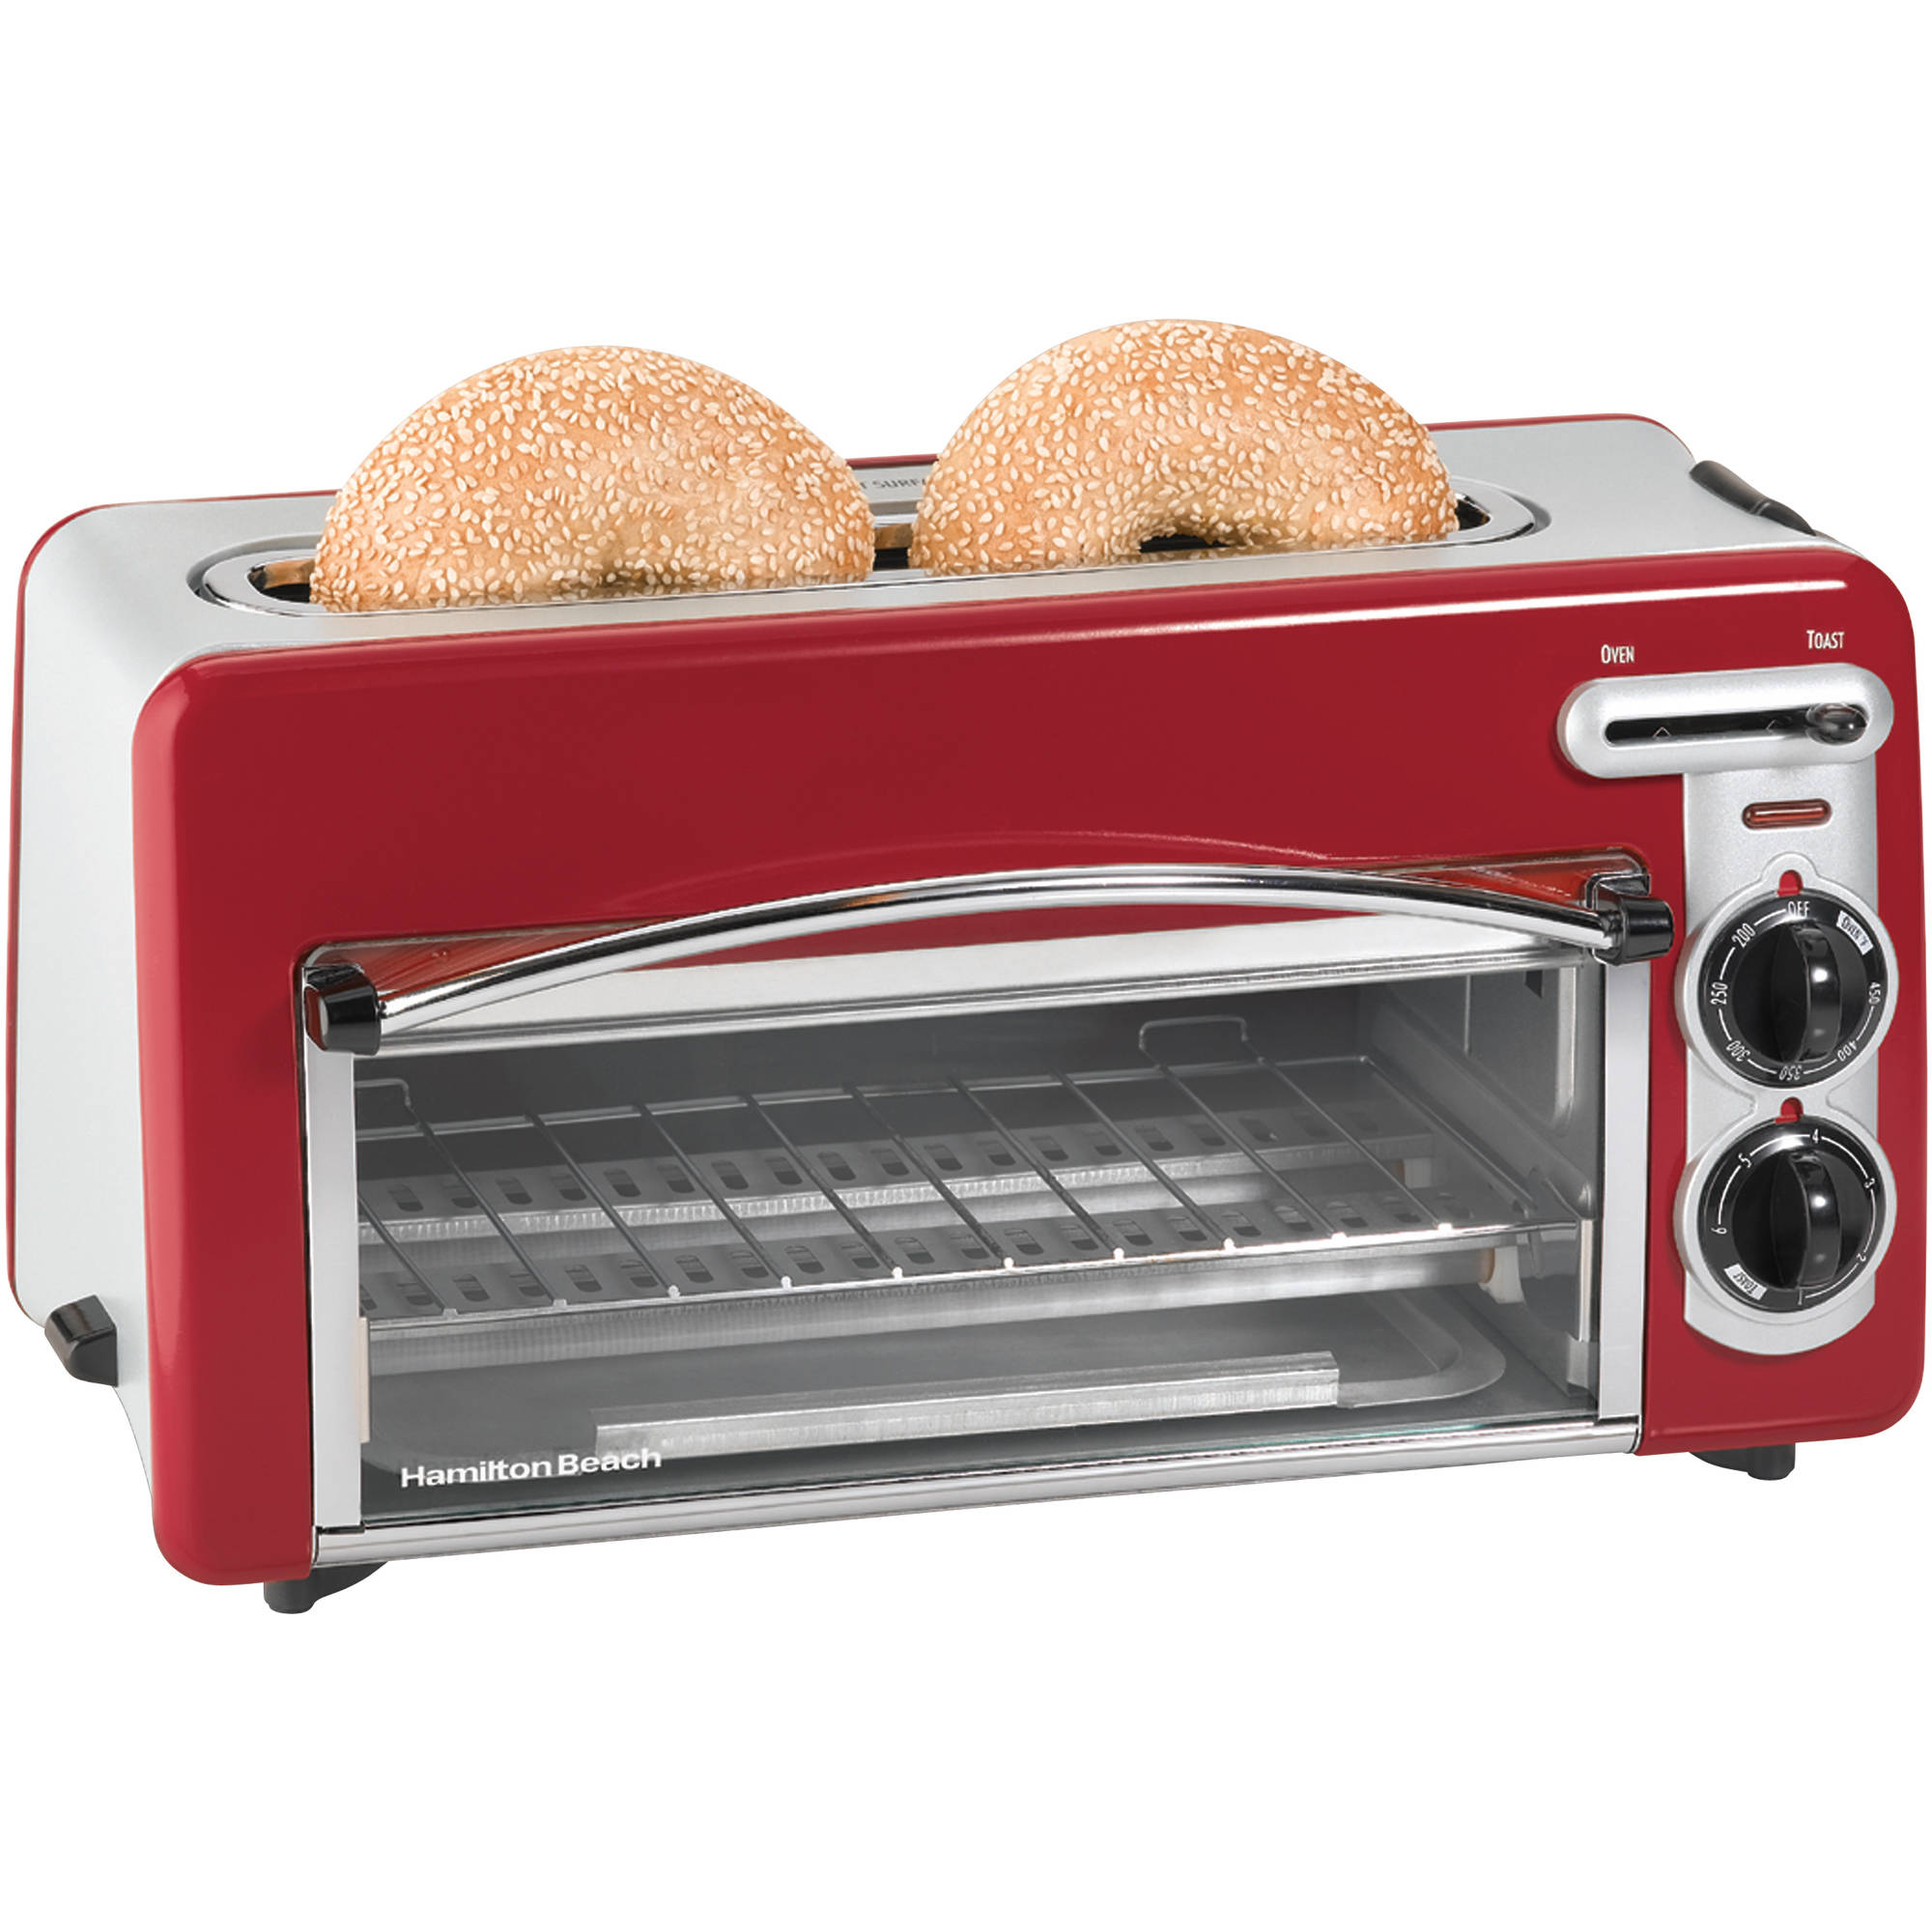 Hamilton Beach Toastation 2 in 1 2 Slice Toaster & Oven In Red